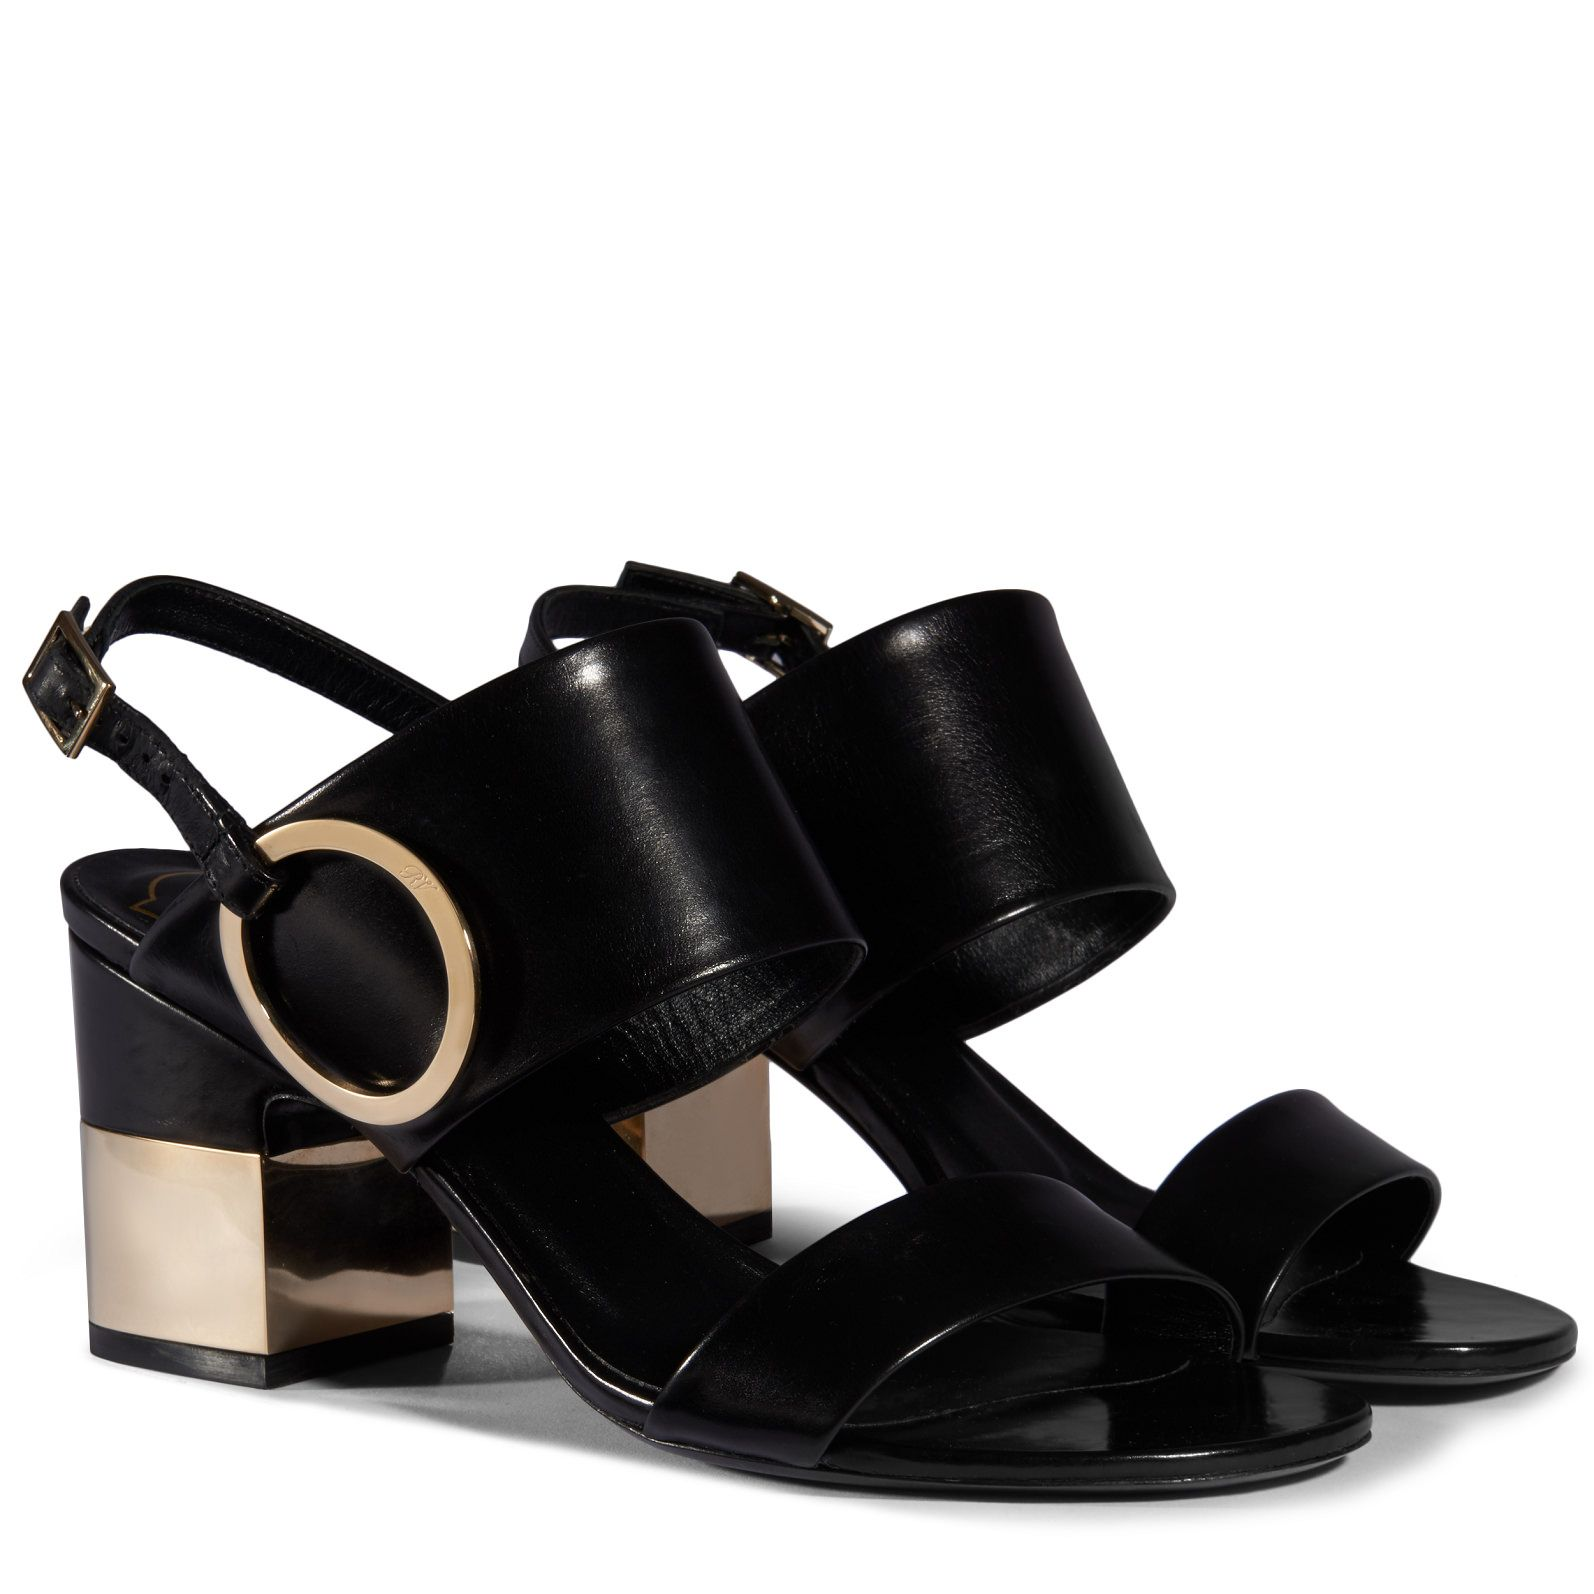 Podium Sandals in Leather now on sale on the official Roger Vivier online  store.